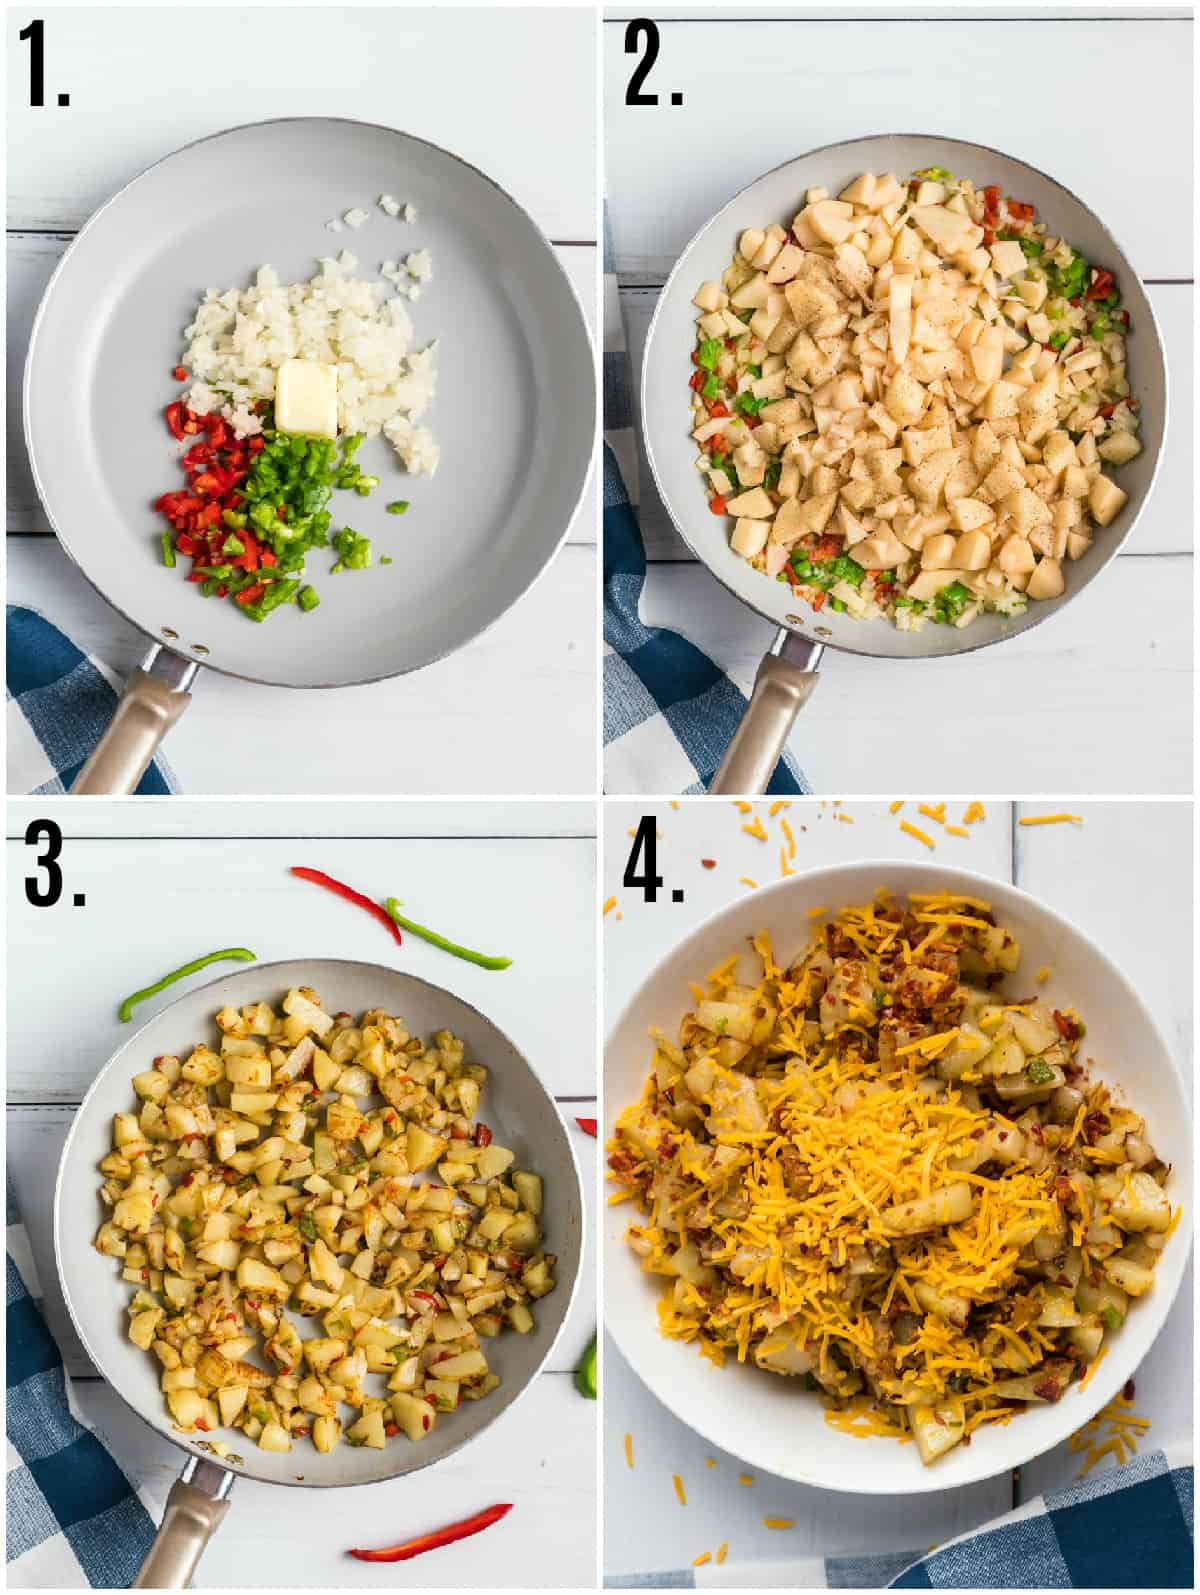 Step by step photos on how to make Cheesy Breakfast Potatoes